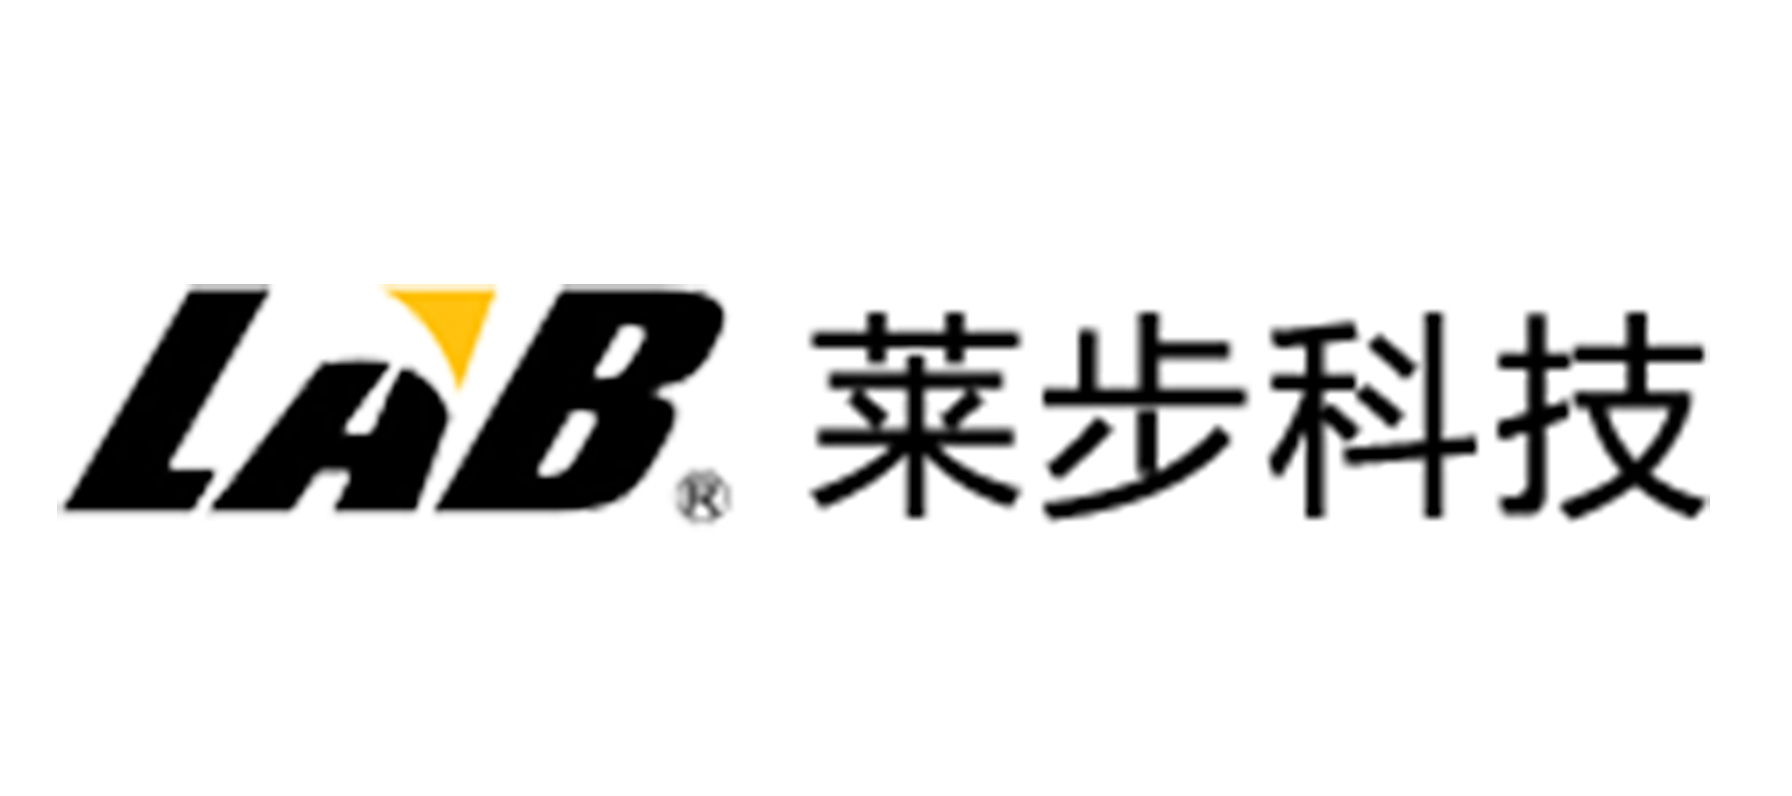 NANJING LAIBU SCIENCE AND TECHNOLOGY INDUSTRY CO., LTD